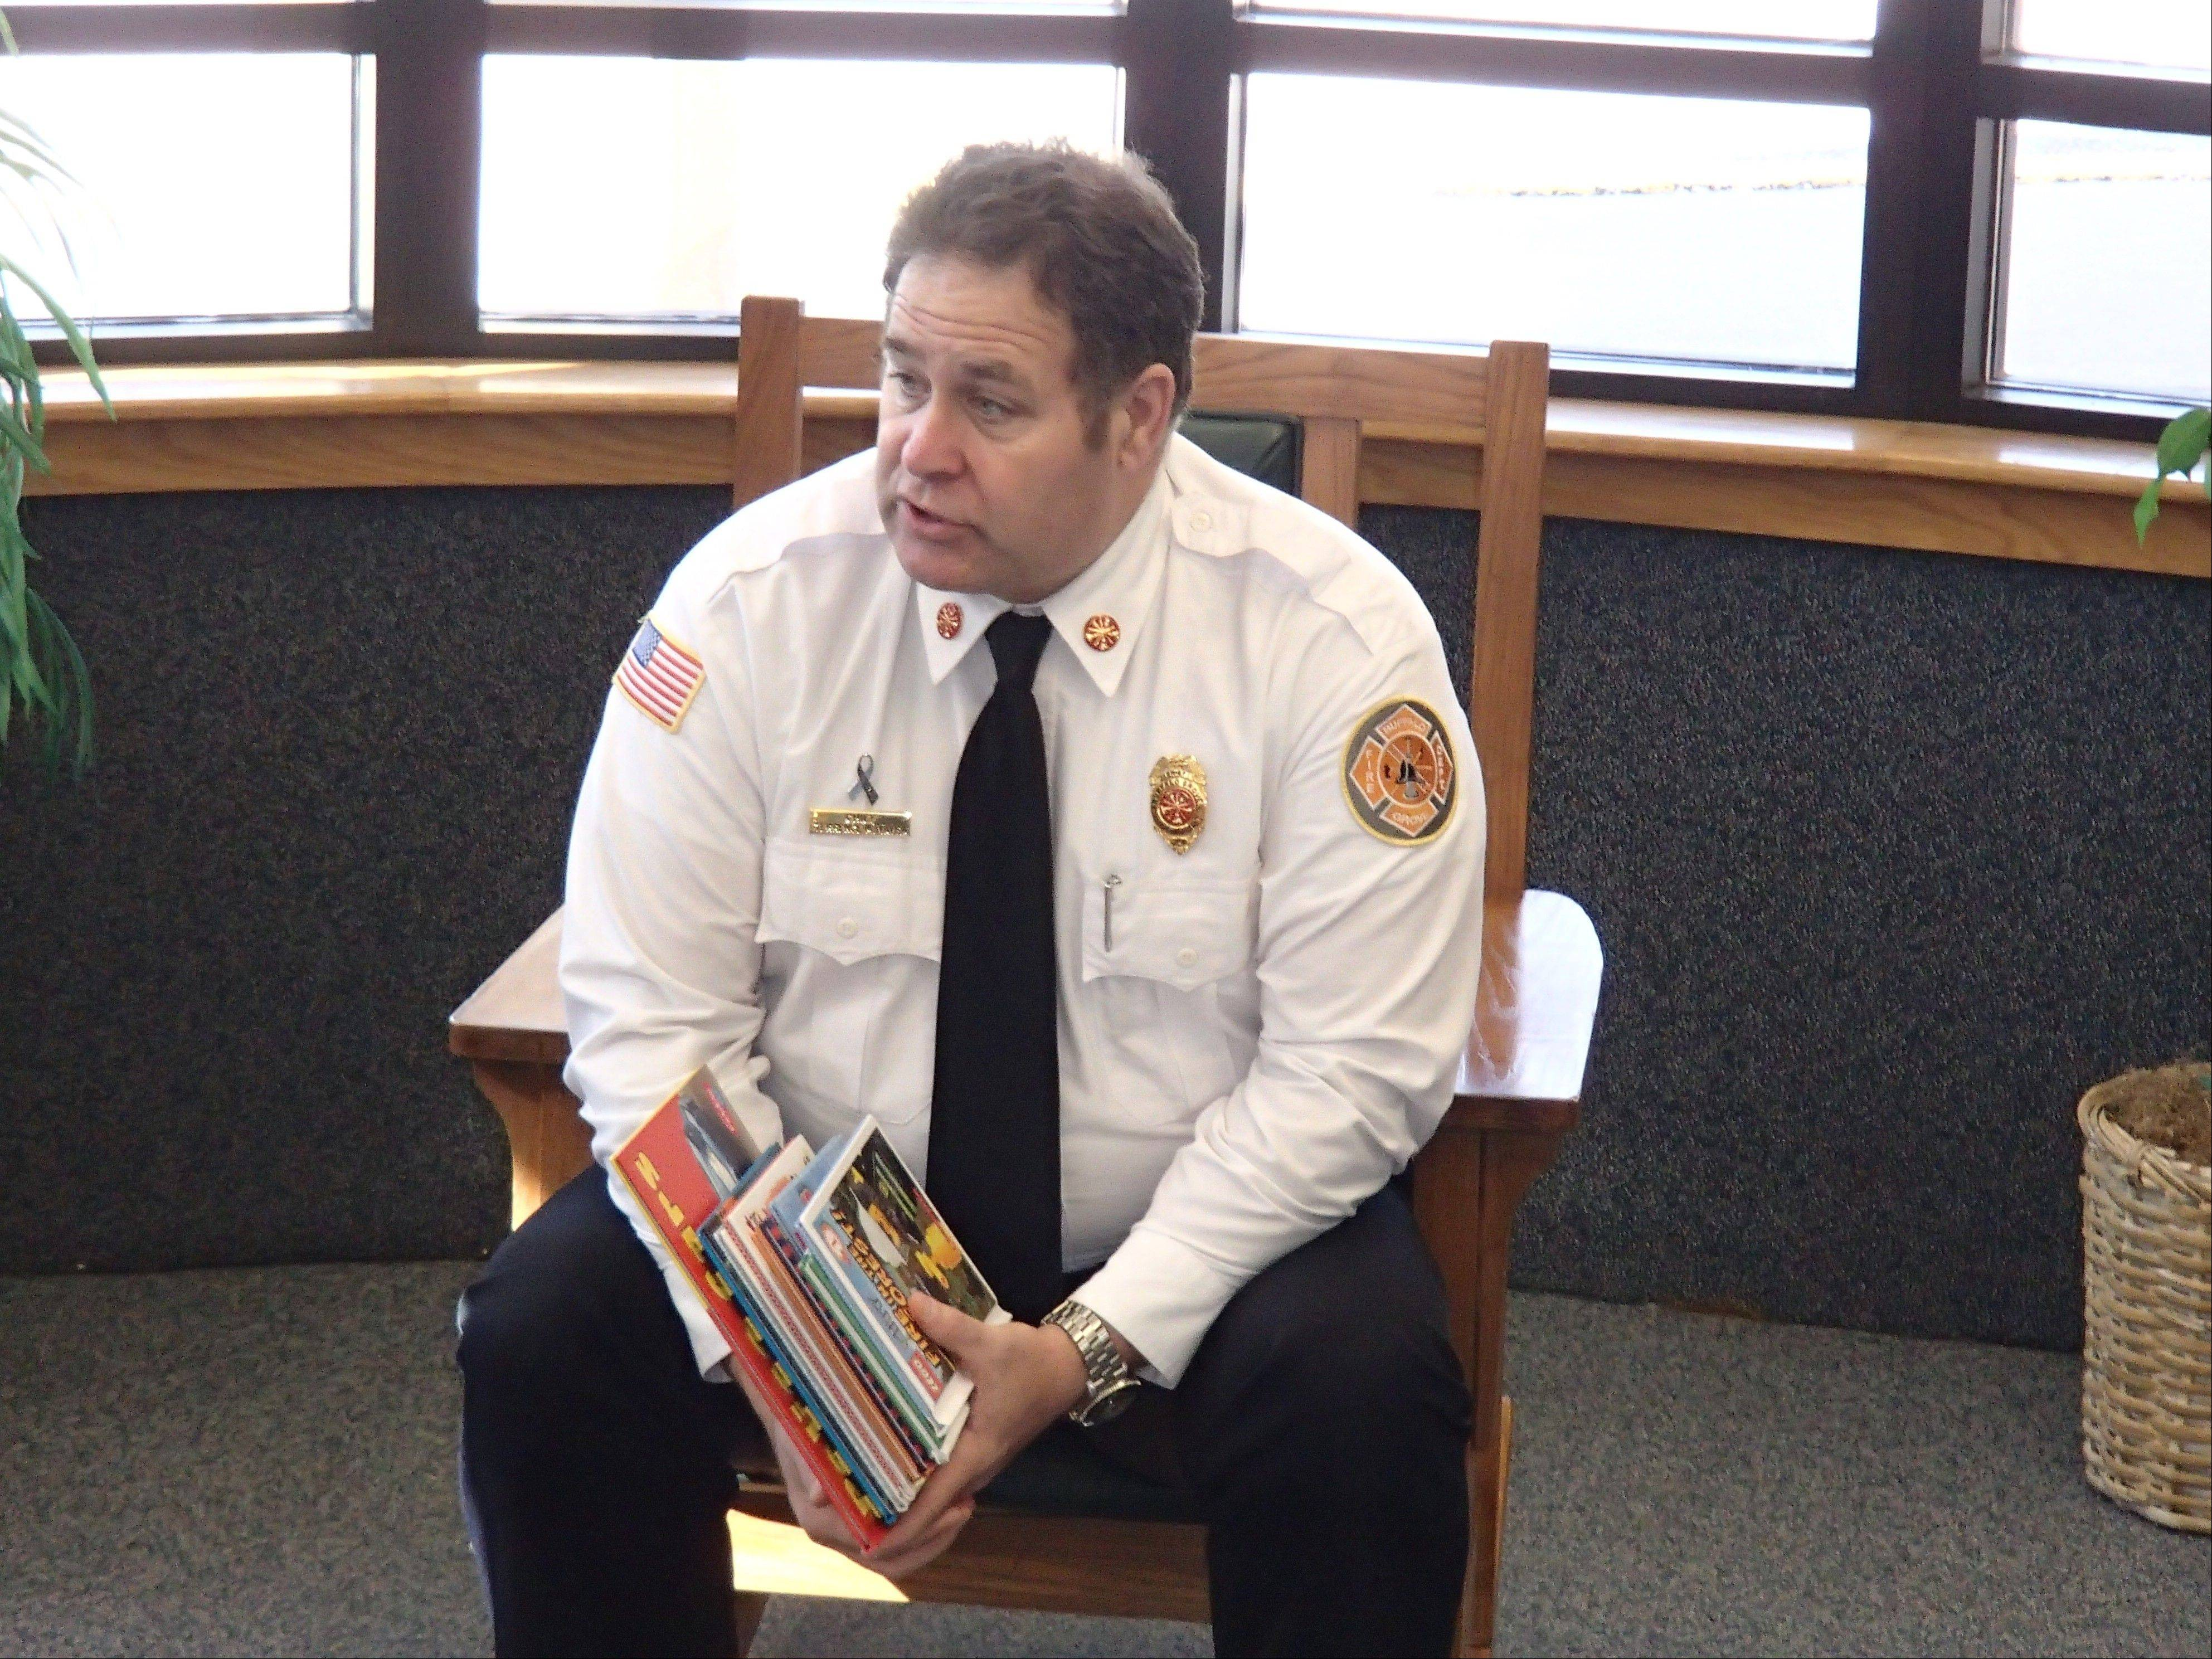 Buffalo Grove Fire Chief Terry Vavra reads a book to second graders at Joyce Kilmer Elementary School in Buffalo Grove. Money from a memorial fund established in honor of 2-year-old Grant Wonders, who died in a fire Jan. 27, 1994, was used to buy the book.